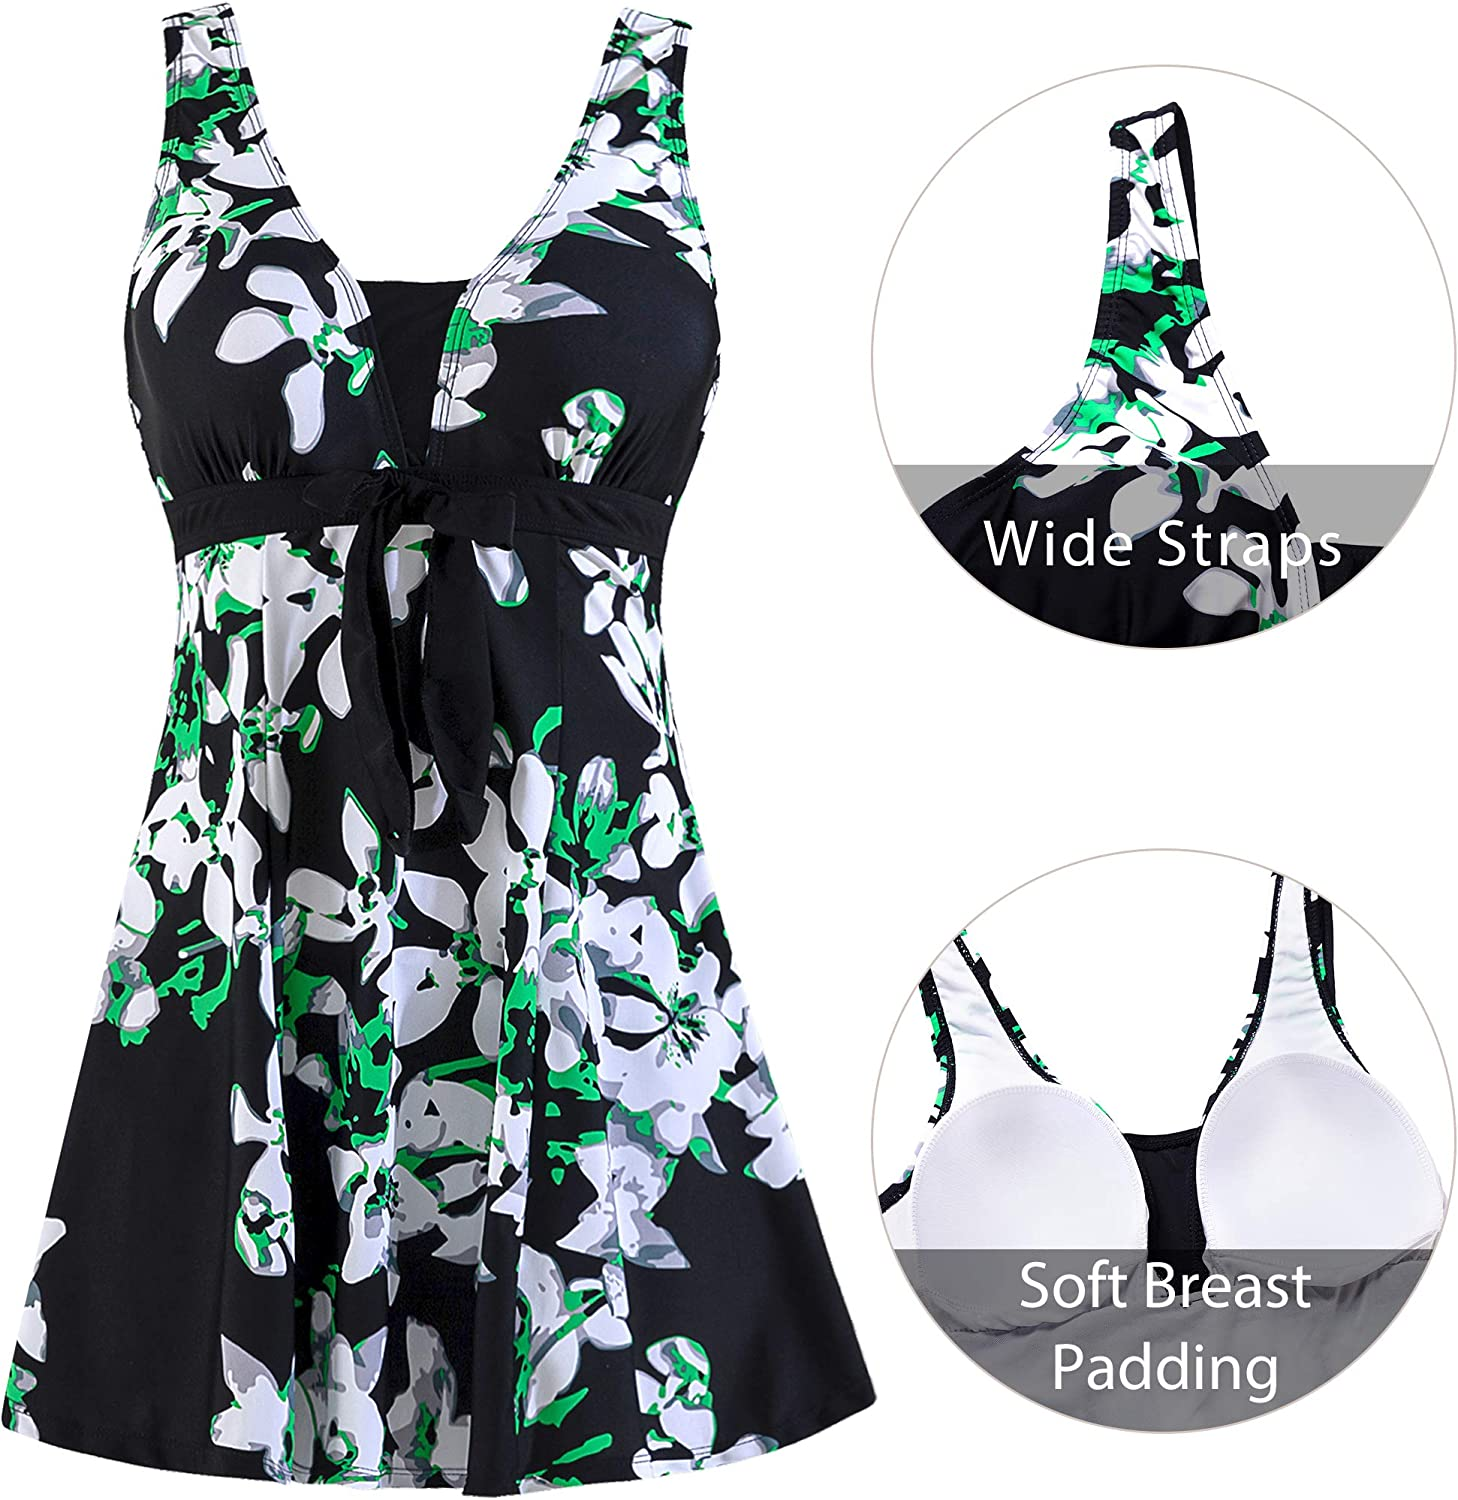 Wantdo Women Swimming Costume One Piece with Skirt Shorts